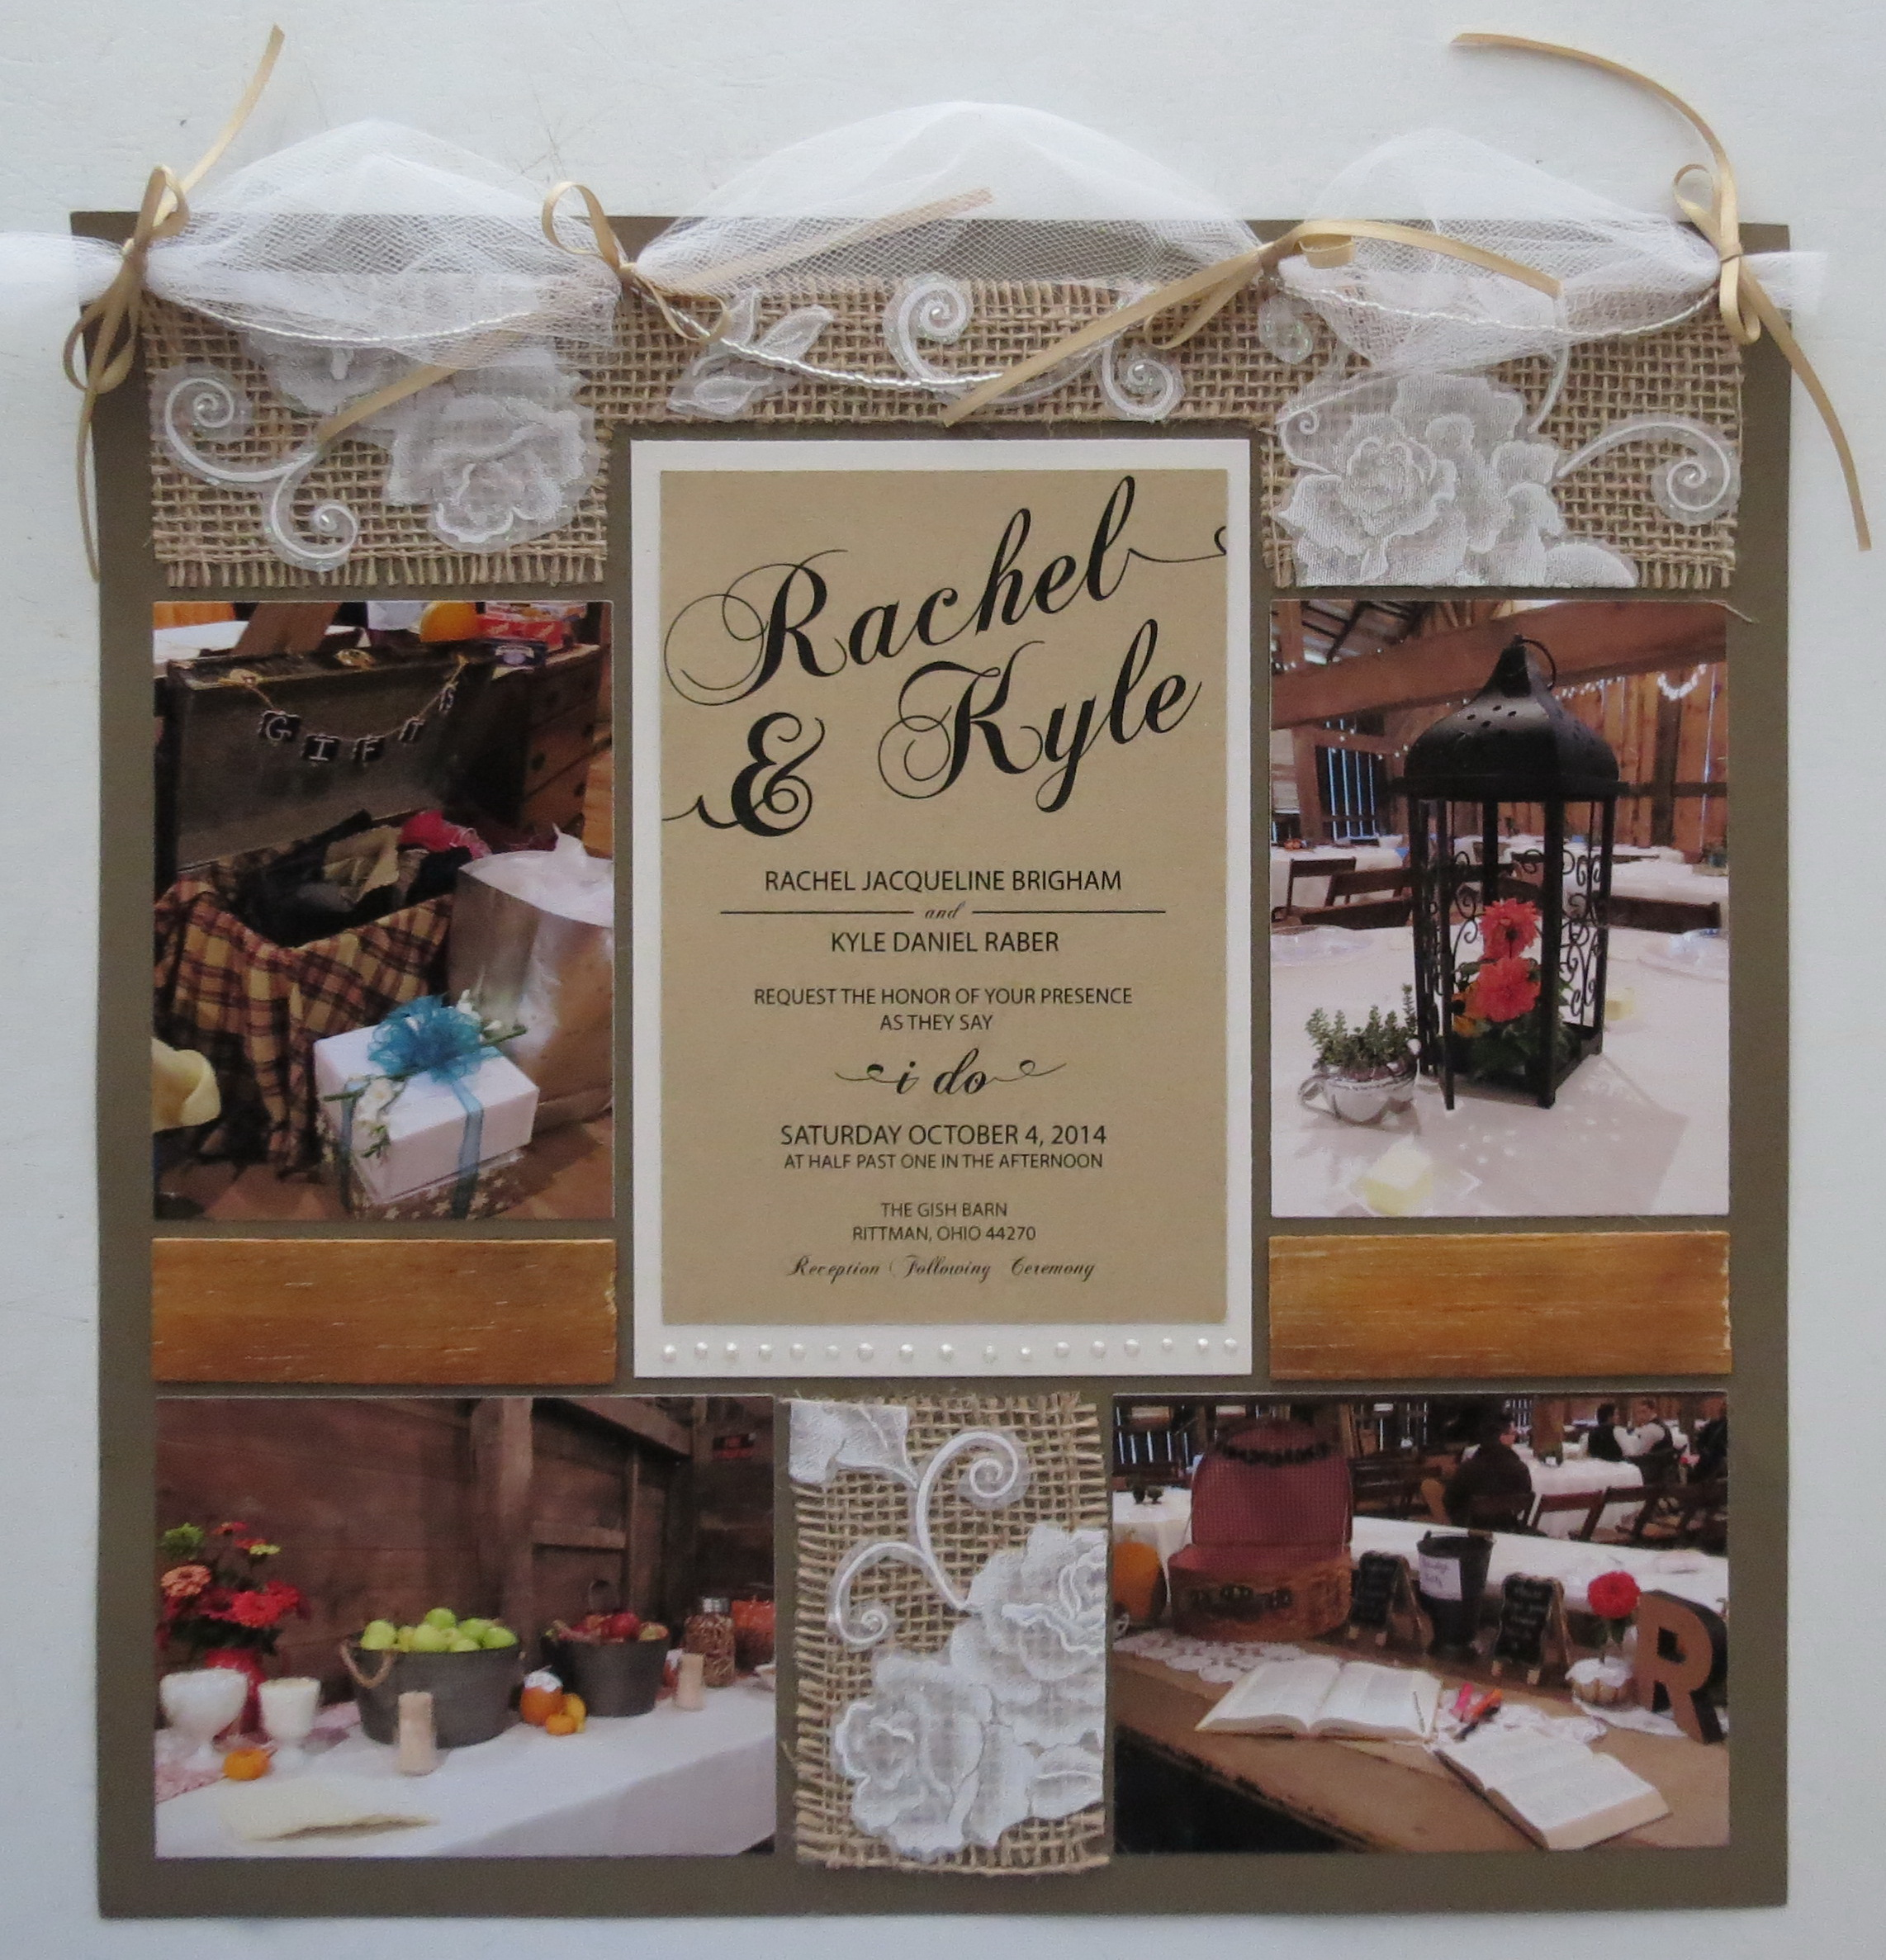 Scrapbook ideas and tips - Wedding Scrapbook Tips Wedding Invitation Incorporated Into The Layout As A Title